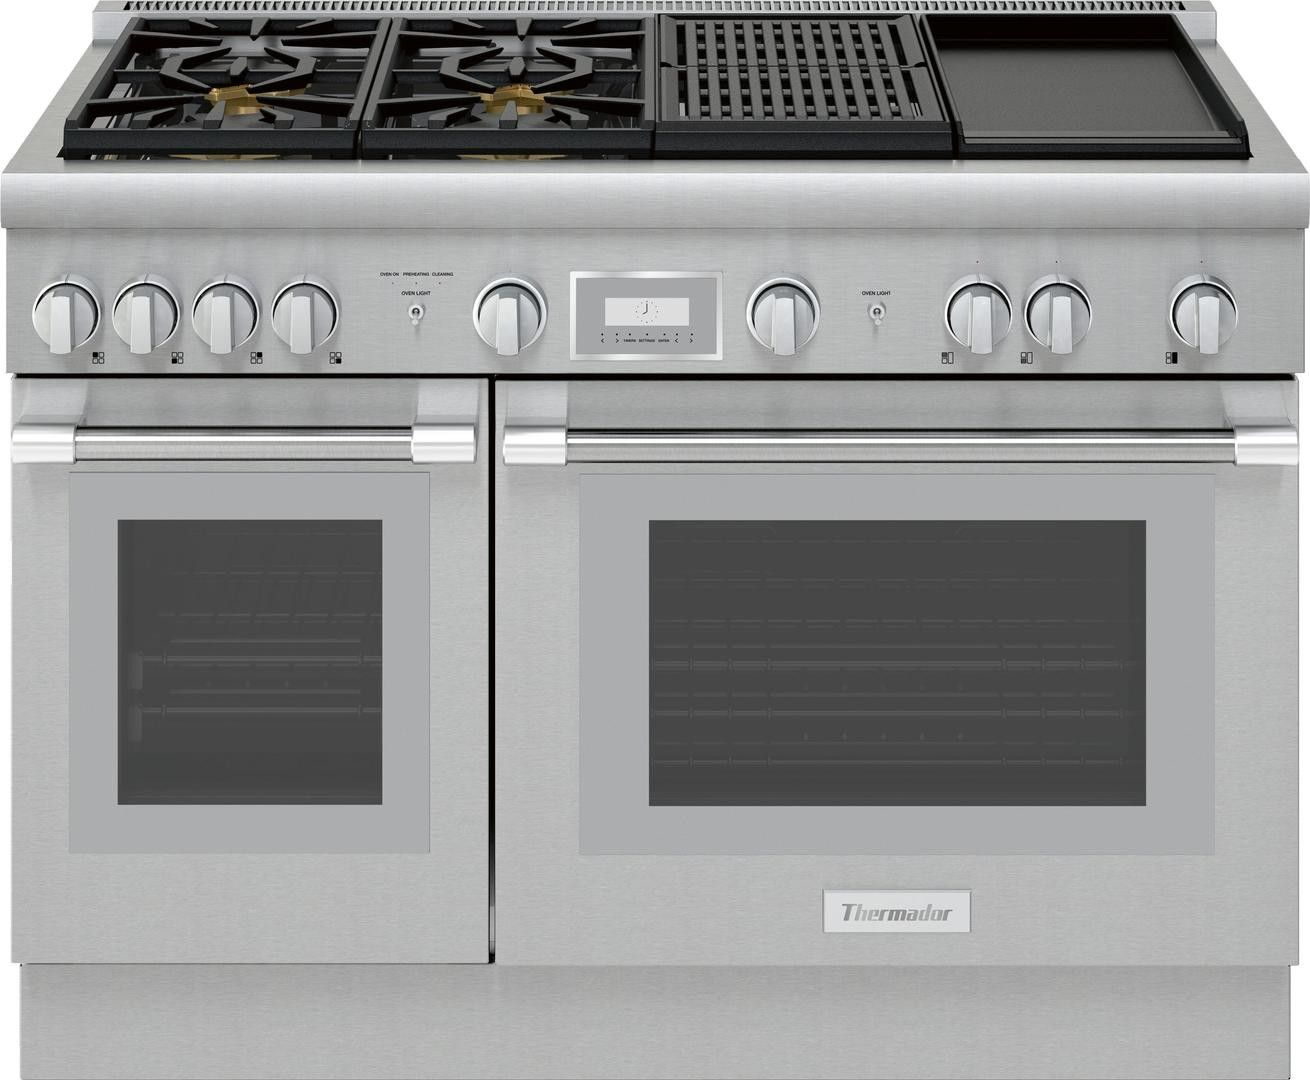 Thermador Pro Harmony Prd484wchu In 2020 Freestanding Double Oven Gas Oven 48 Inch Range